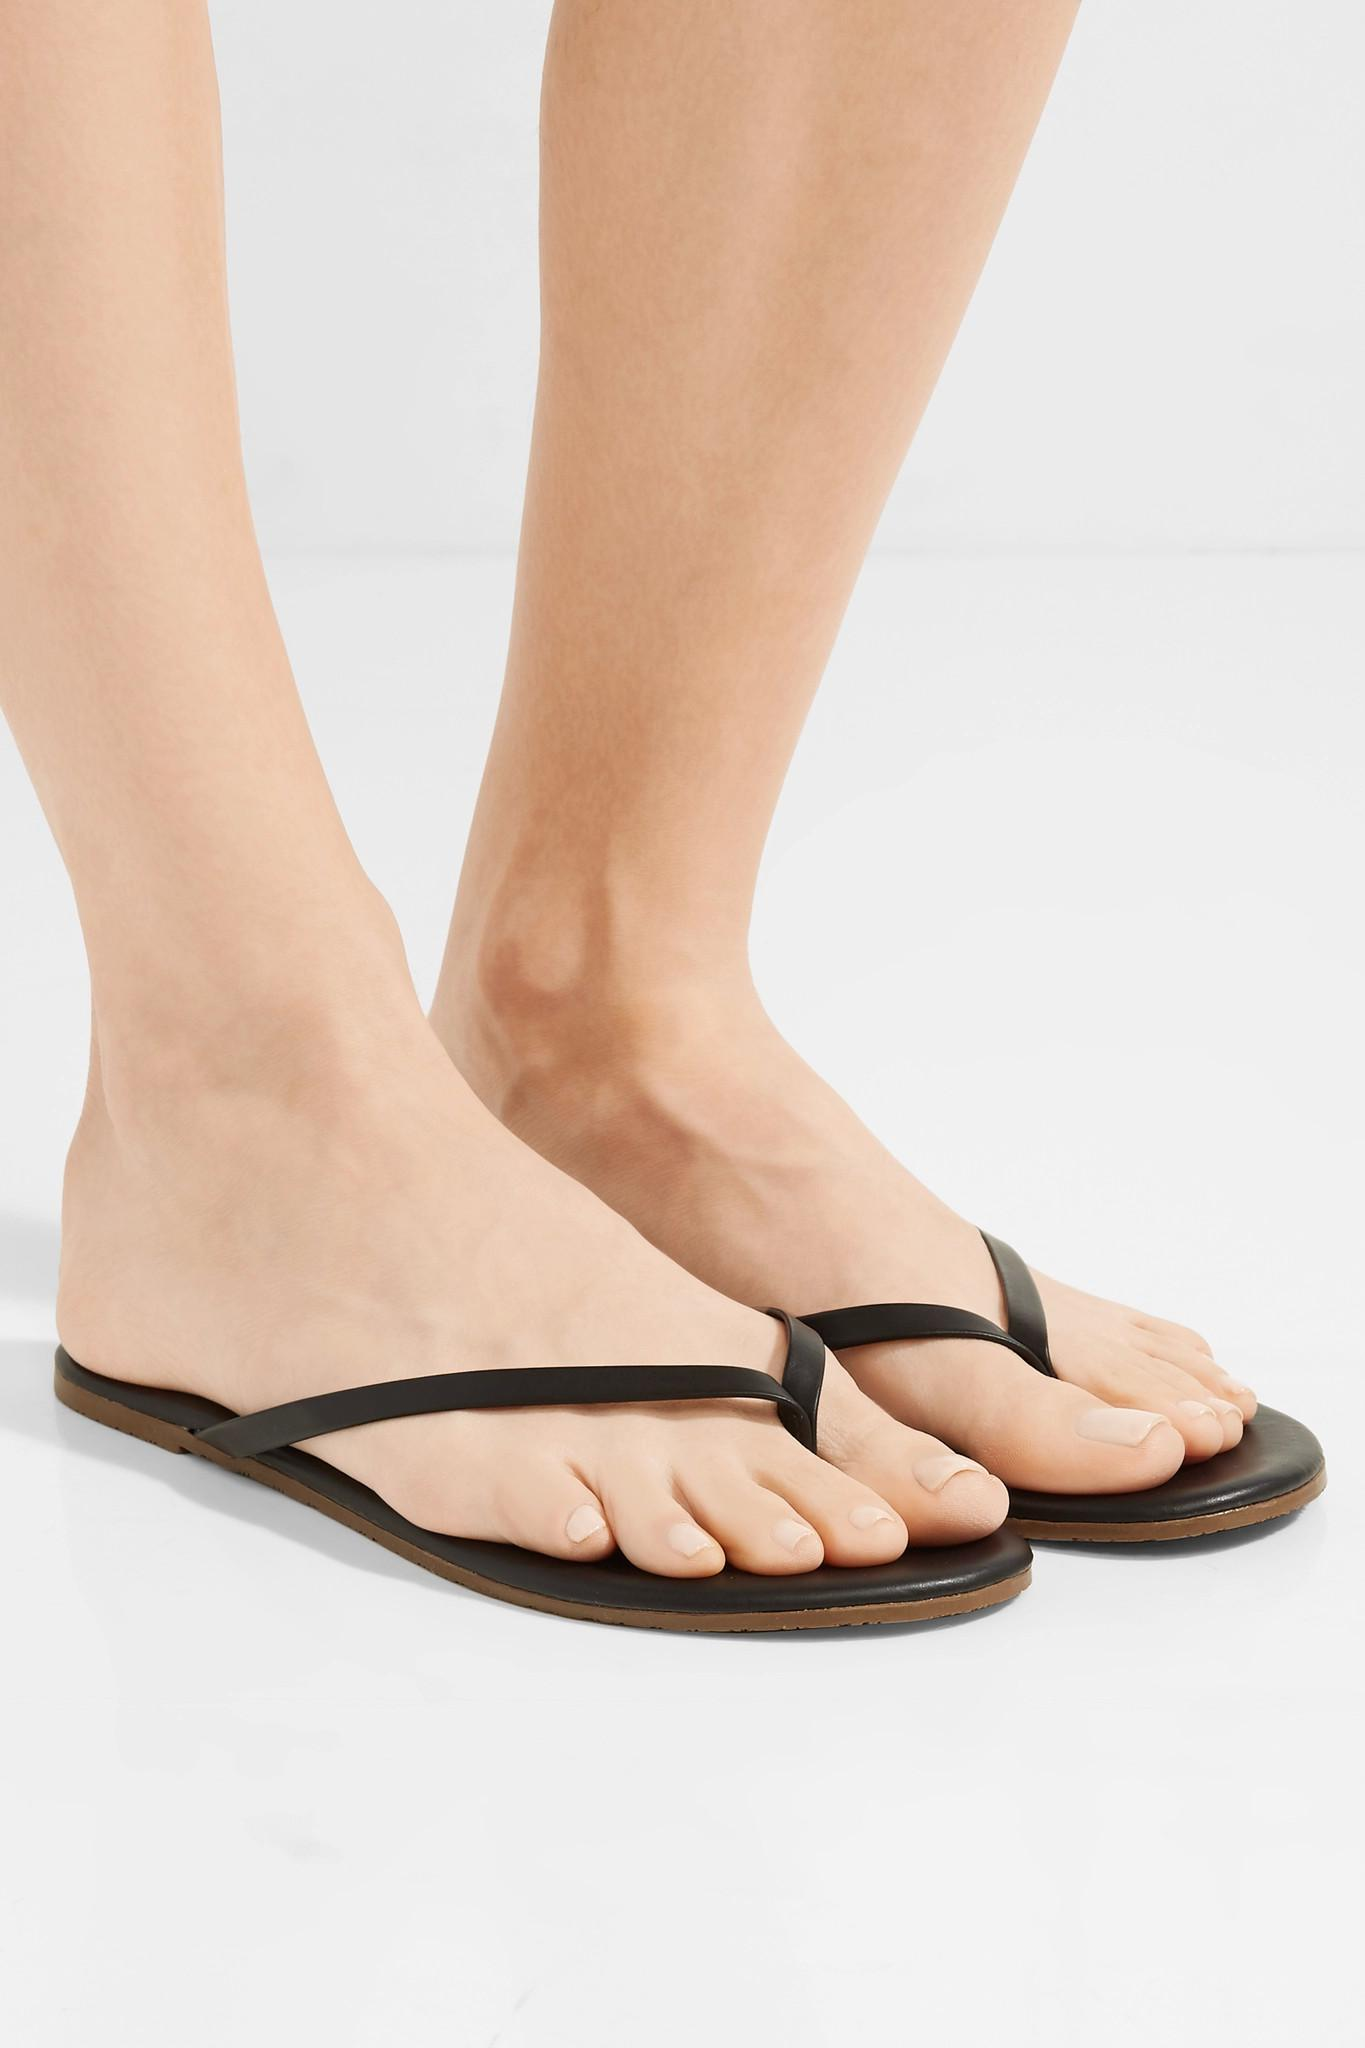 493949a65a859e TKEES - Black Lily Matte-leather Flip Flop - Lyst. View fullscreen